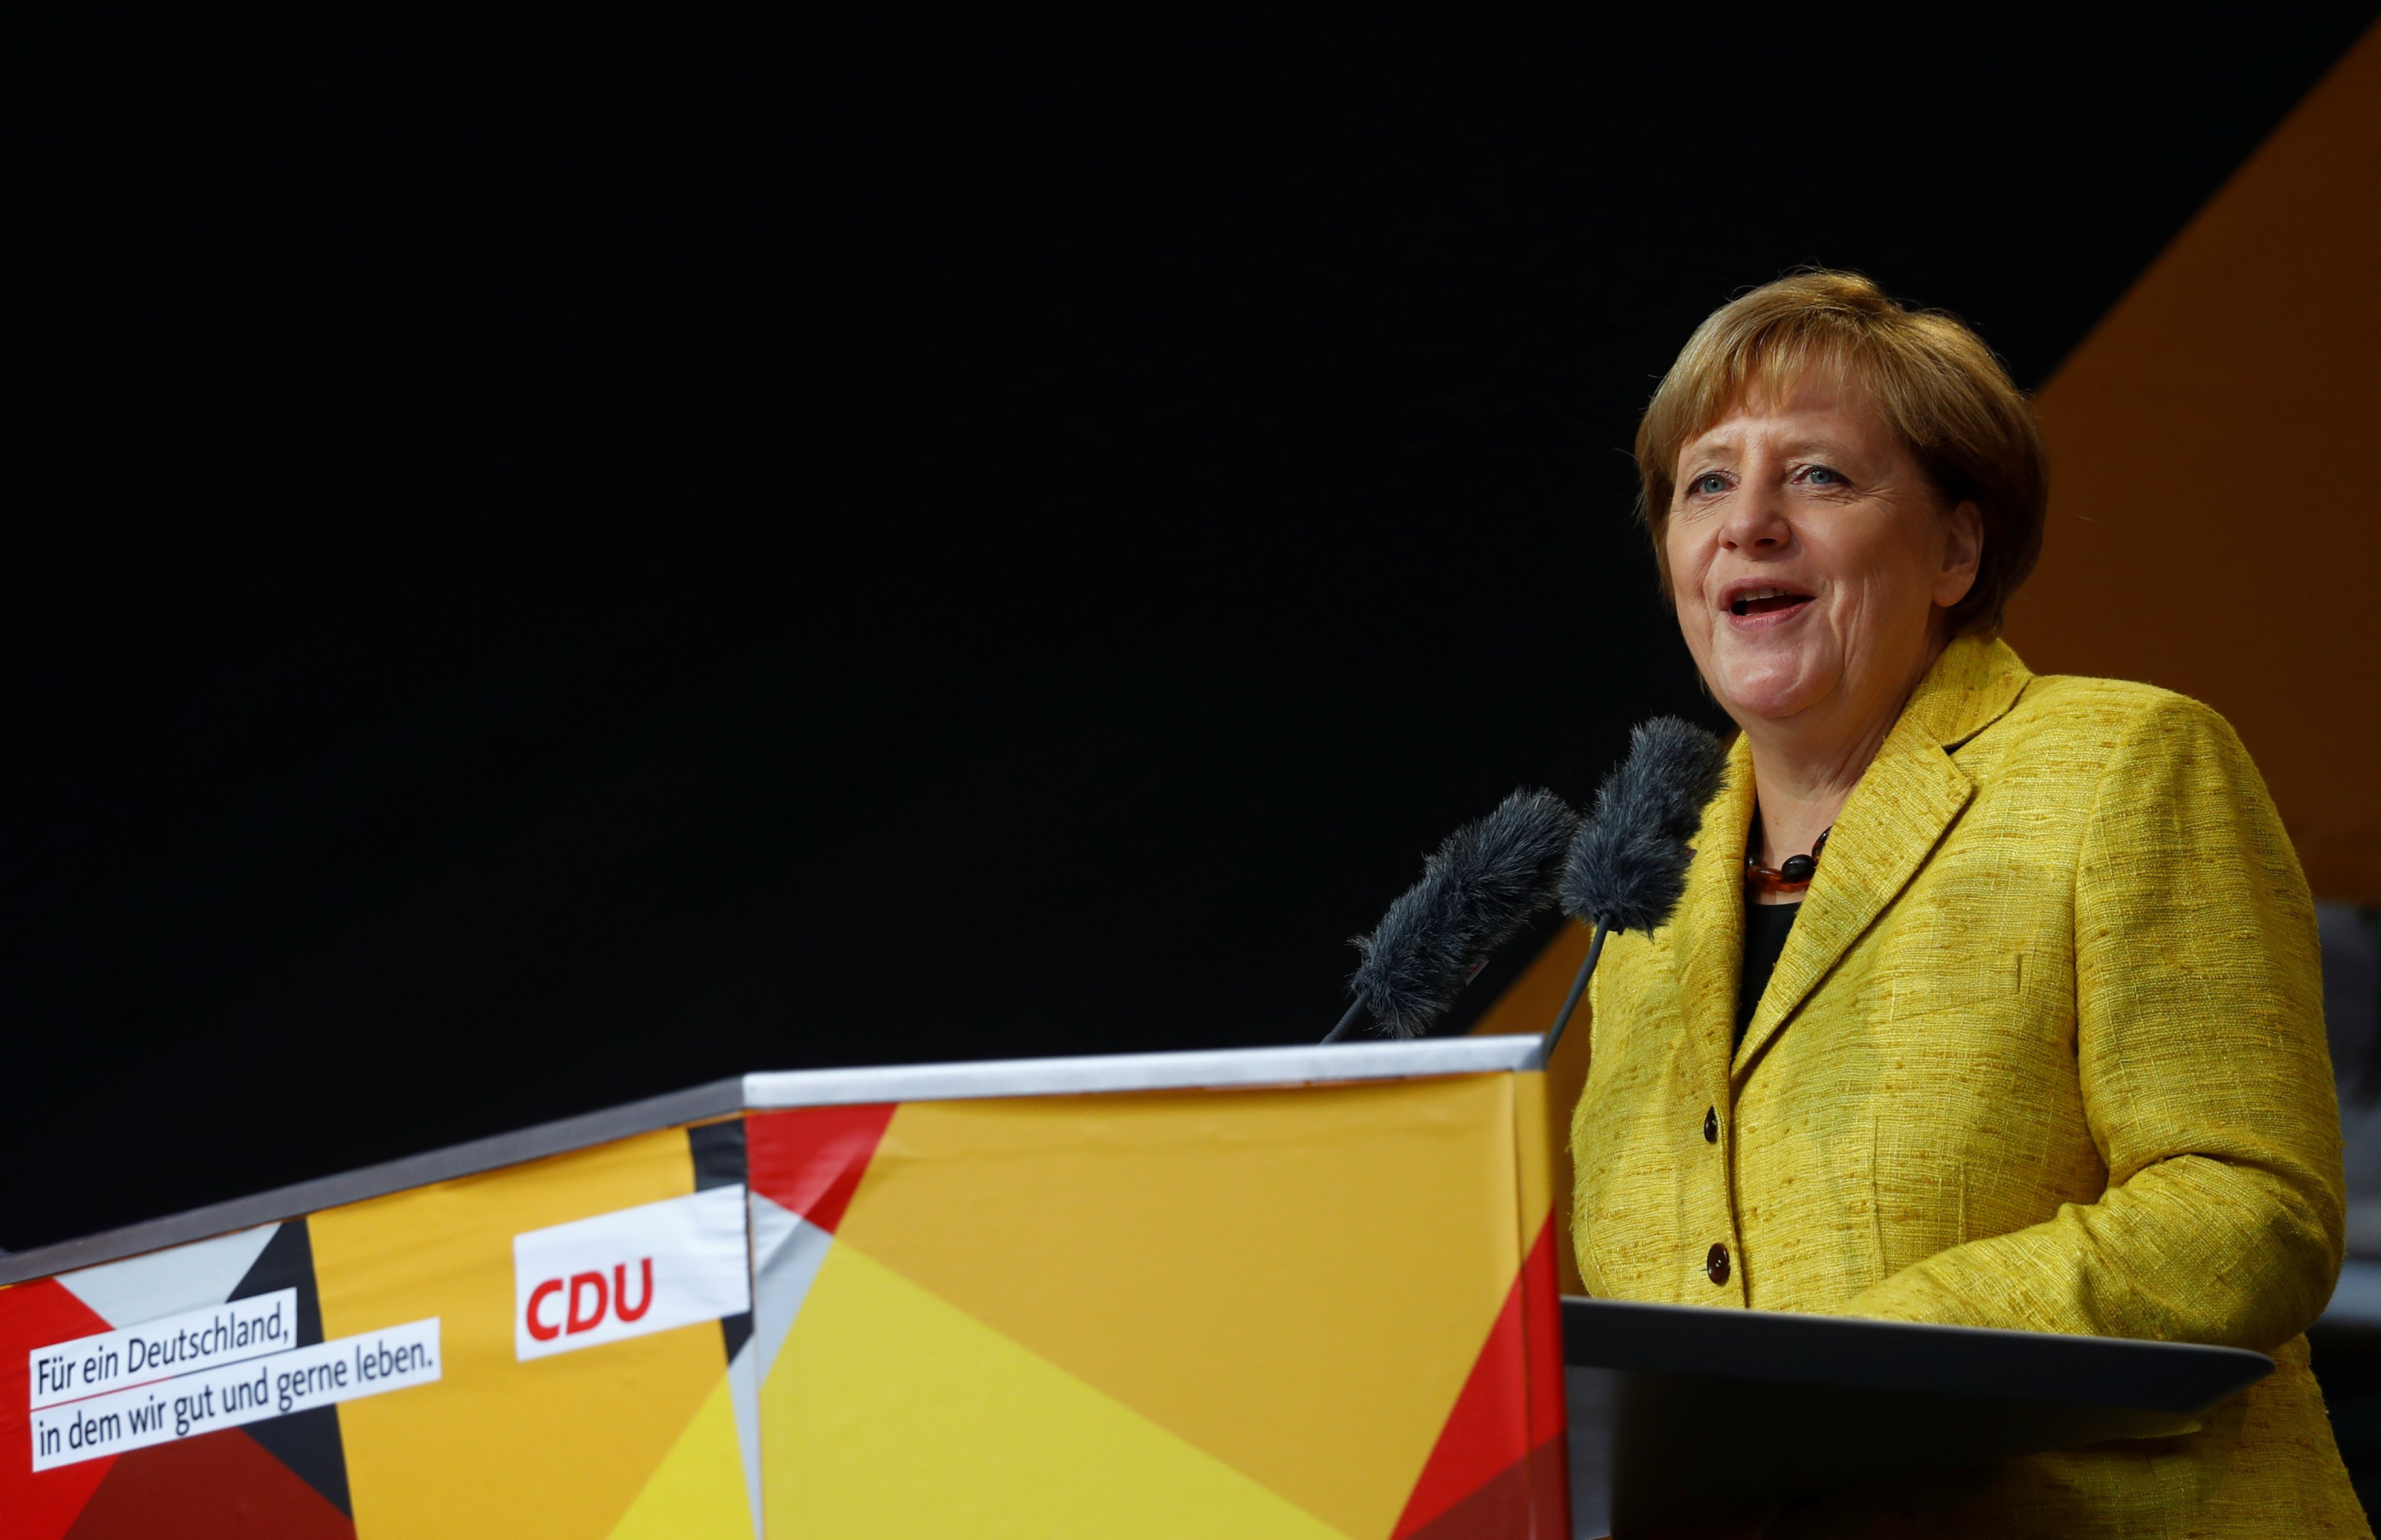 The World's Most Powerful Woman Is Seen Rather Differently in Germany